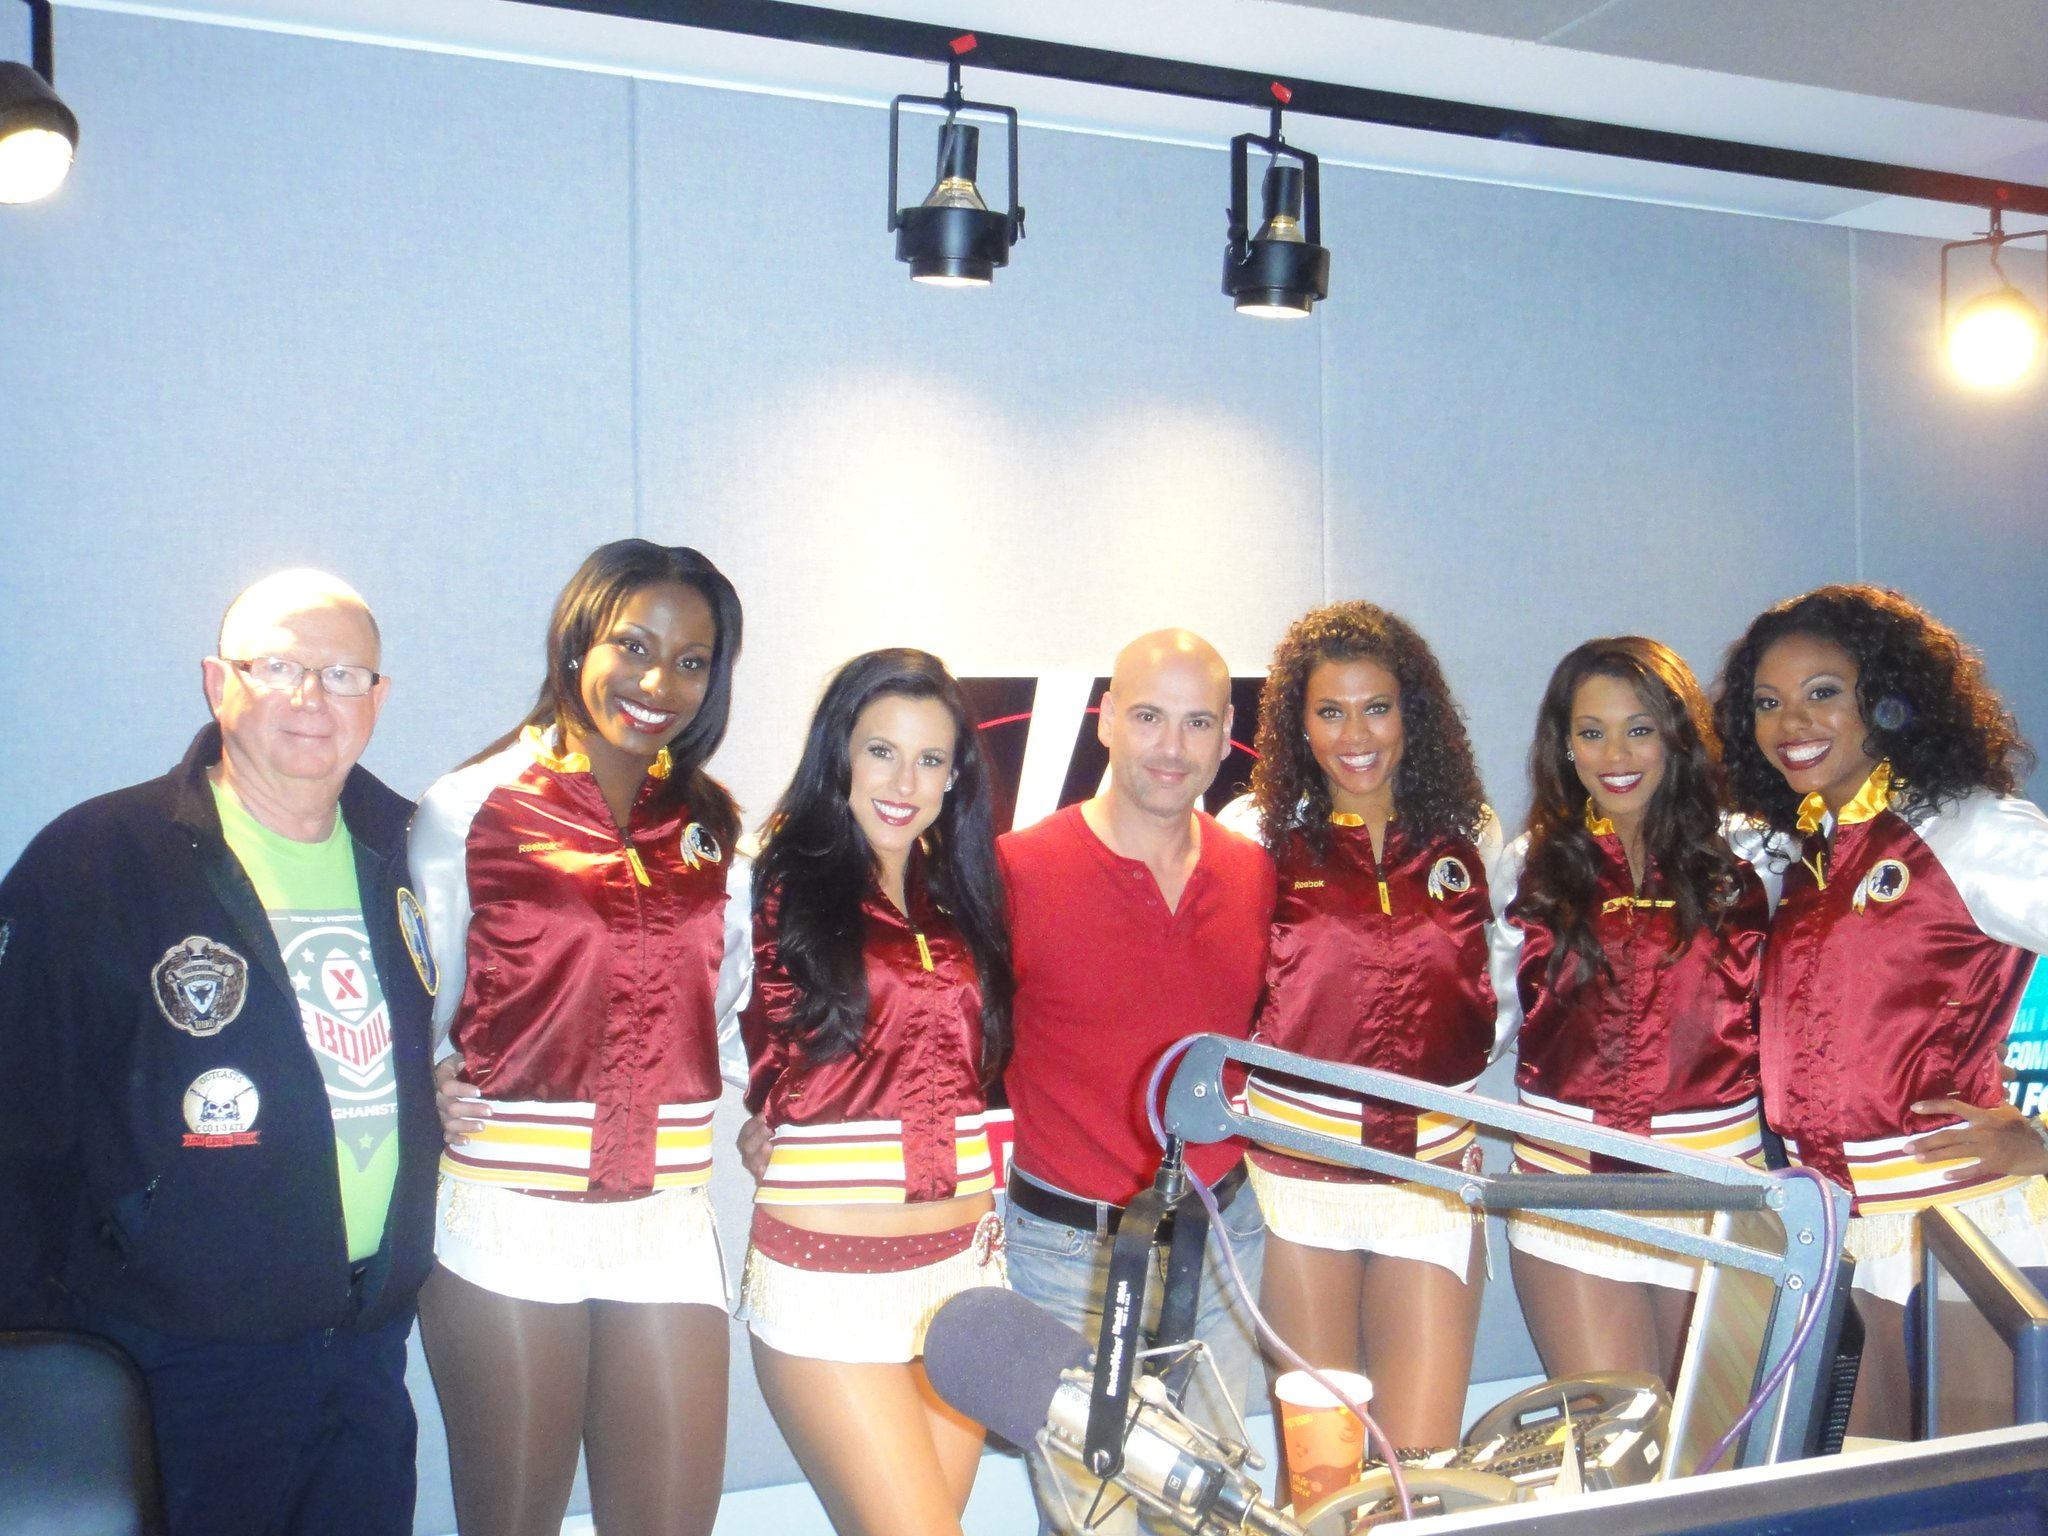 The Redskins Cheerleaders just came back from ente